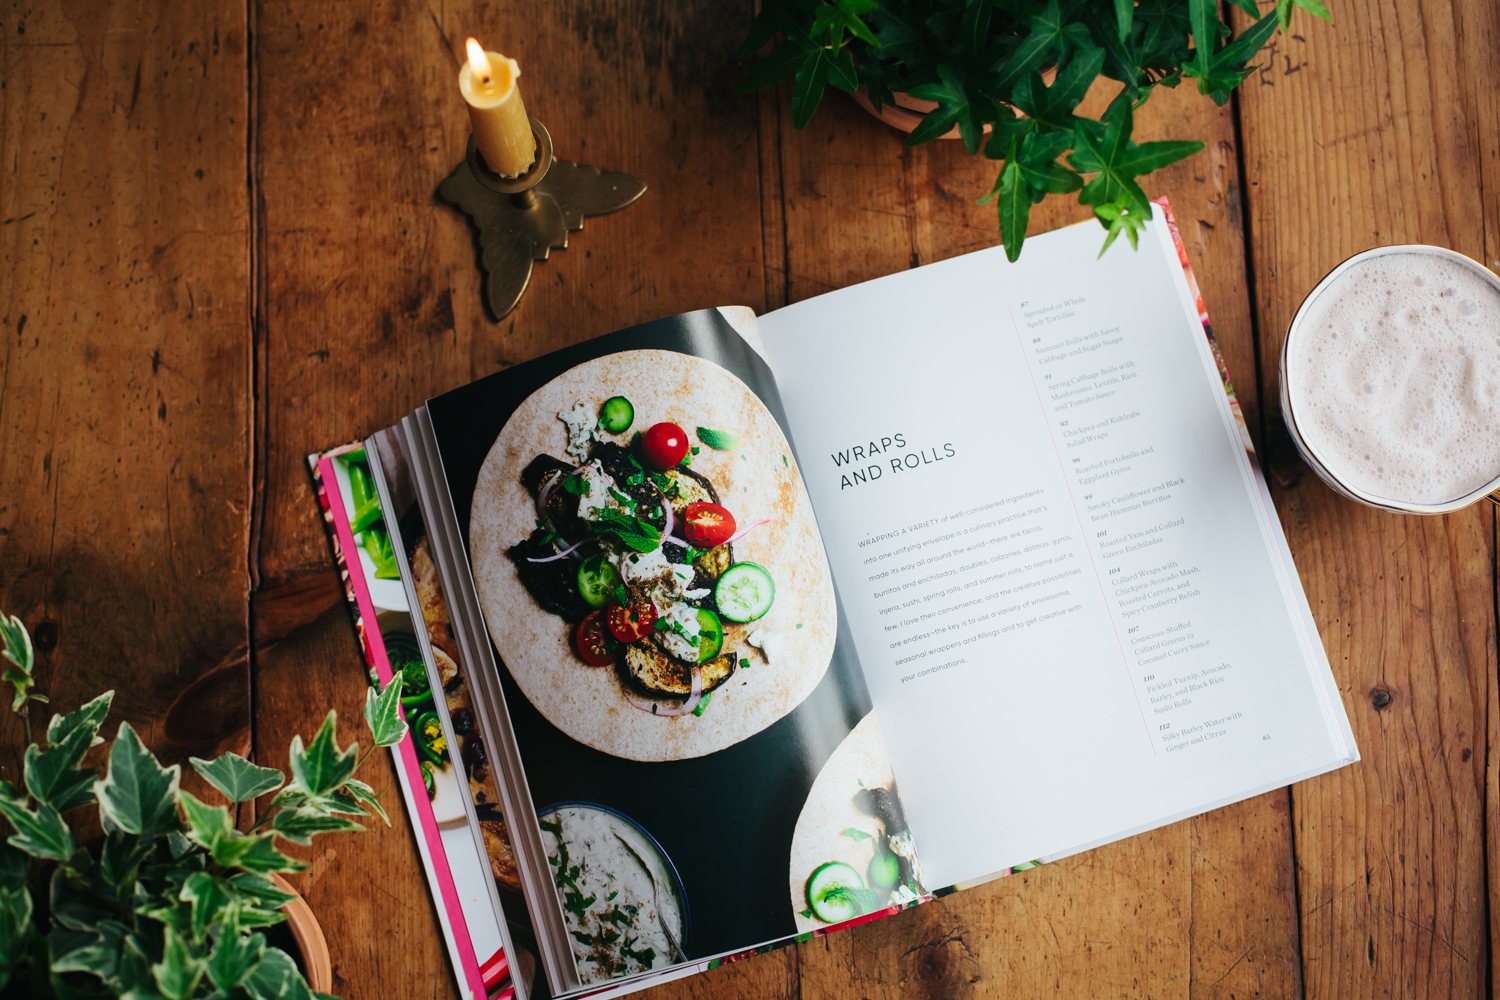 Simply Vibrant, a new cookbook by Anya Kassoff and Masha Davydova